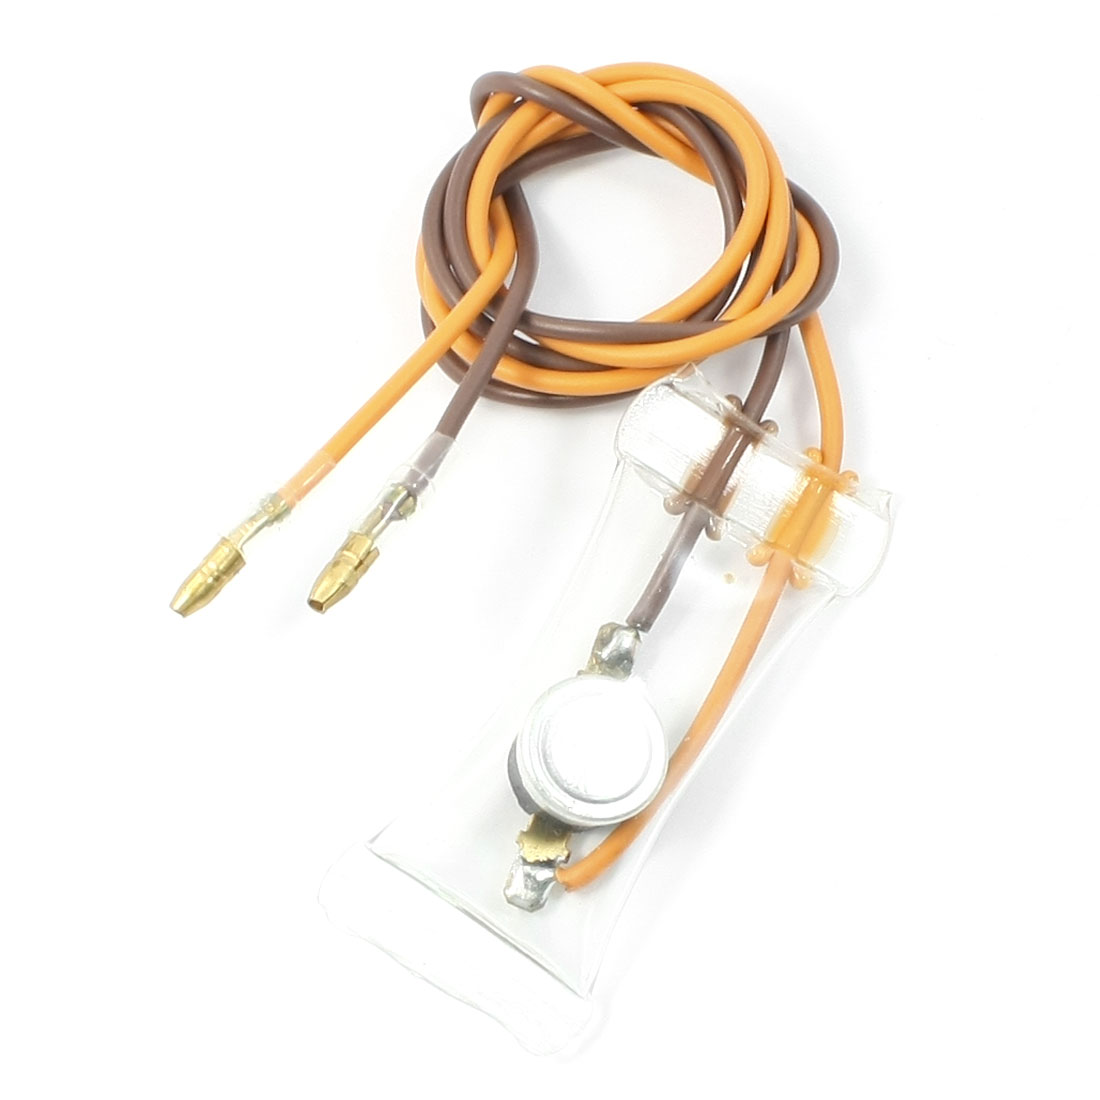 KSD-WB Model 2 Wire Lead Minus 7C Normal Open Refrigerator Defrost Thermostat